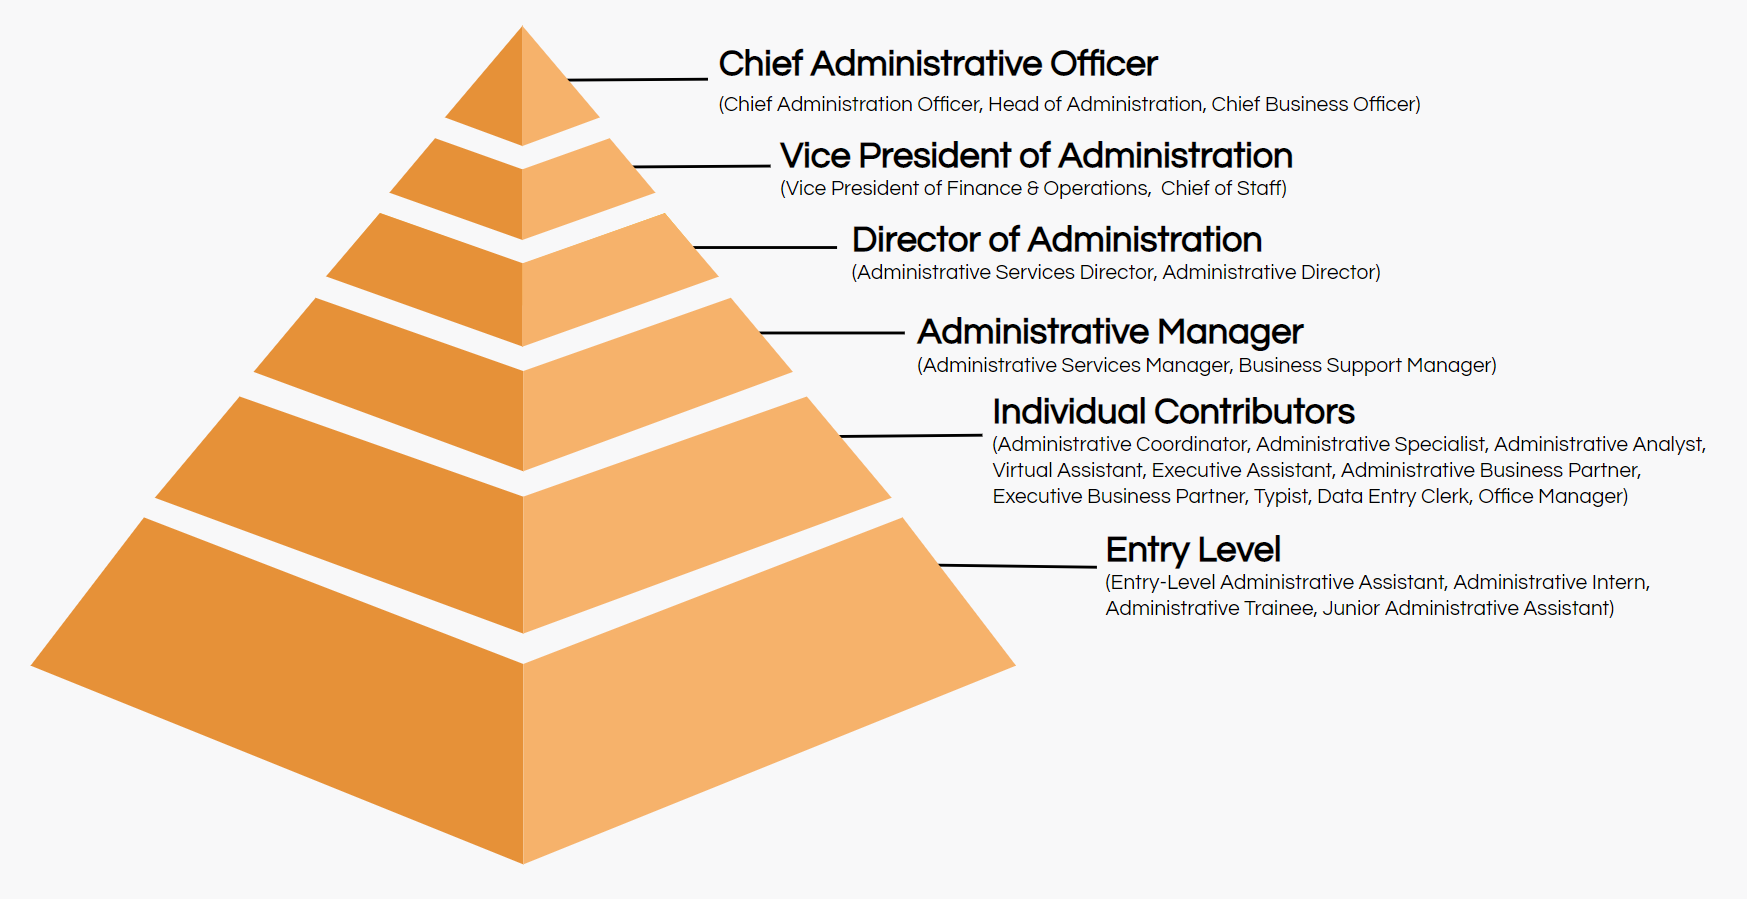 administrative job titles hierarchy